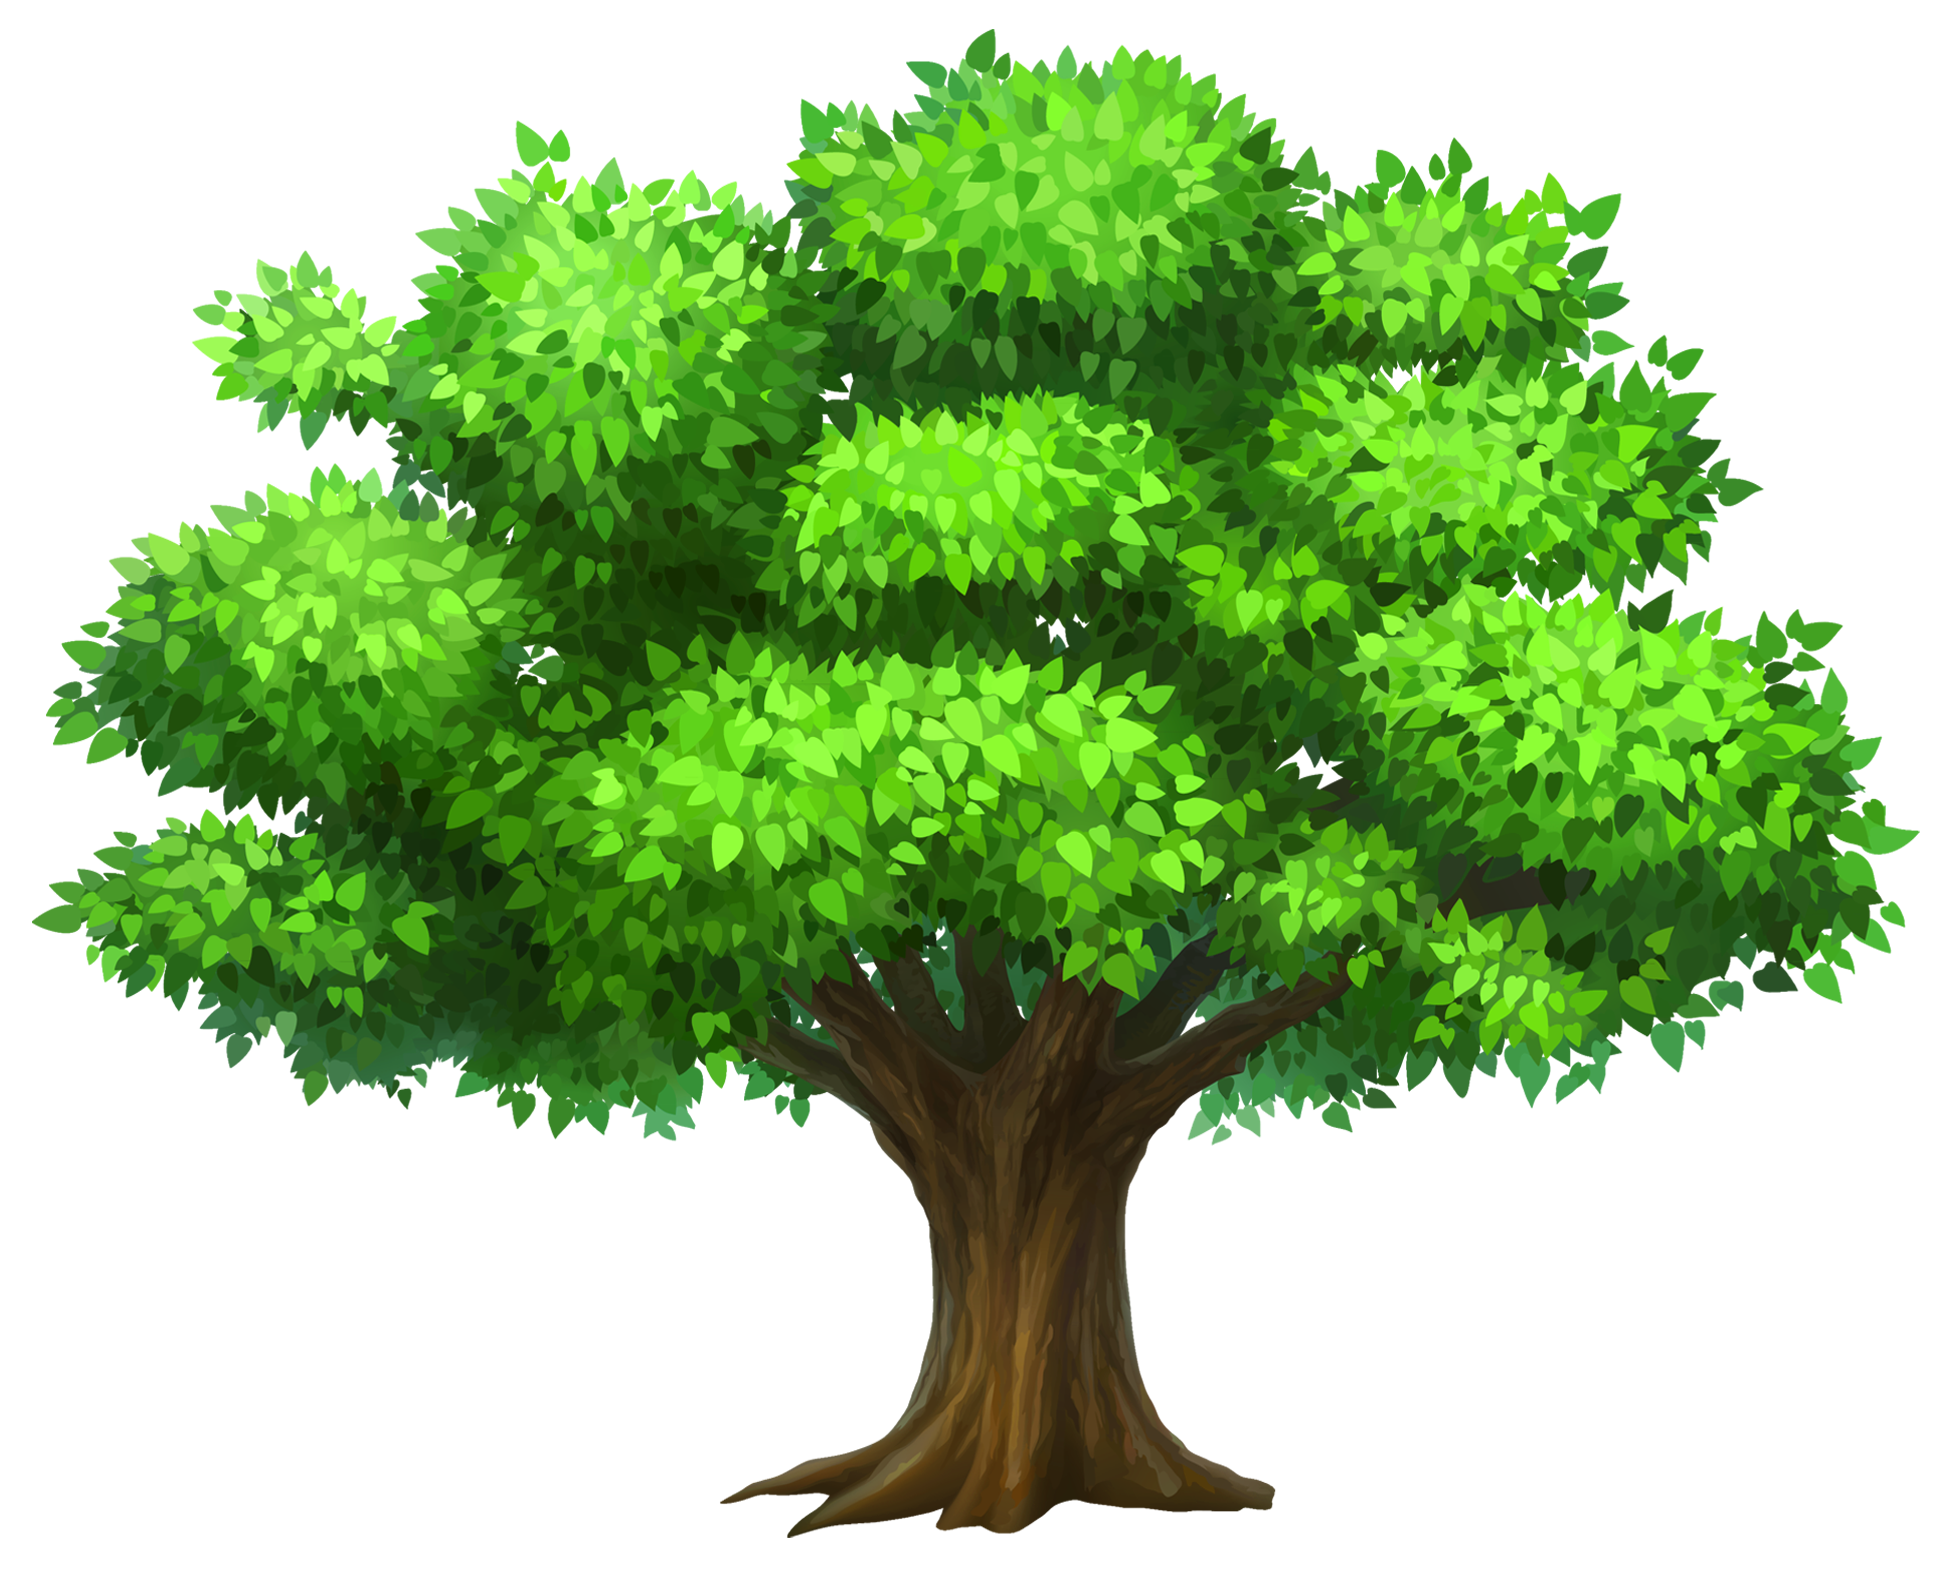 PNG HD Images Of Trees - 126430